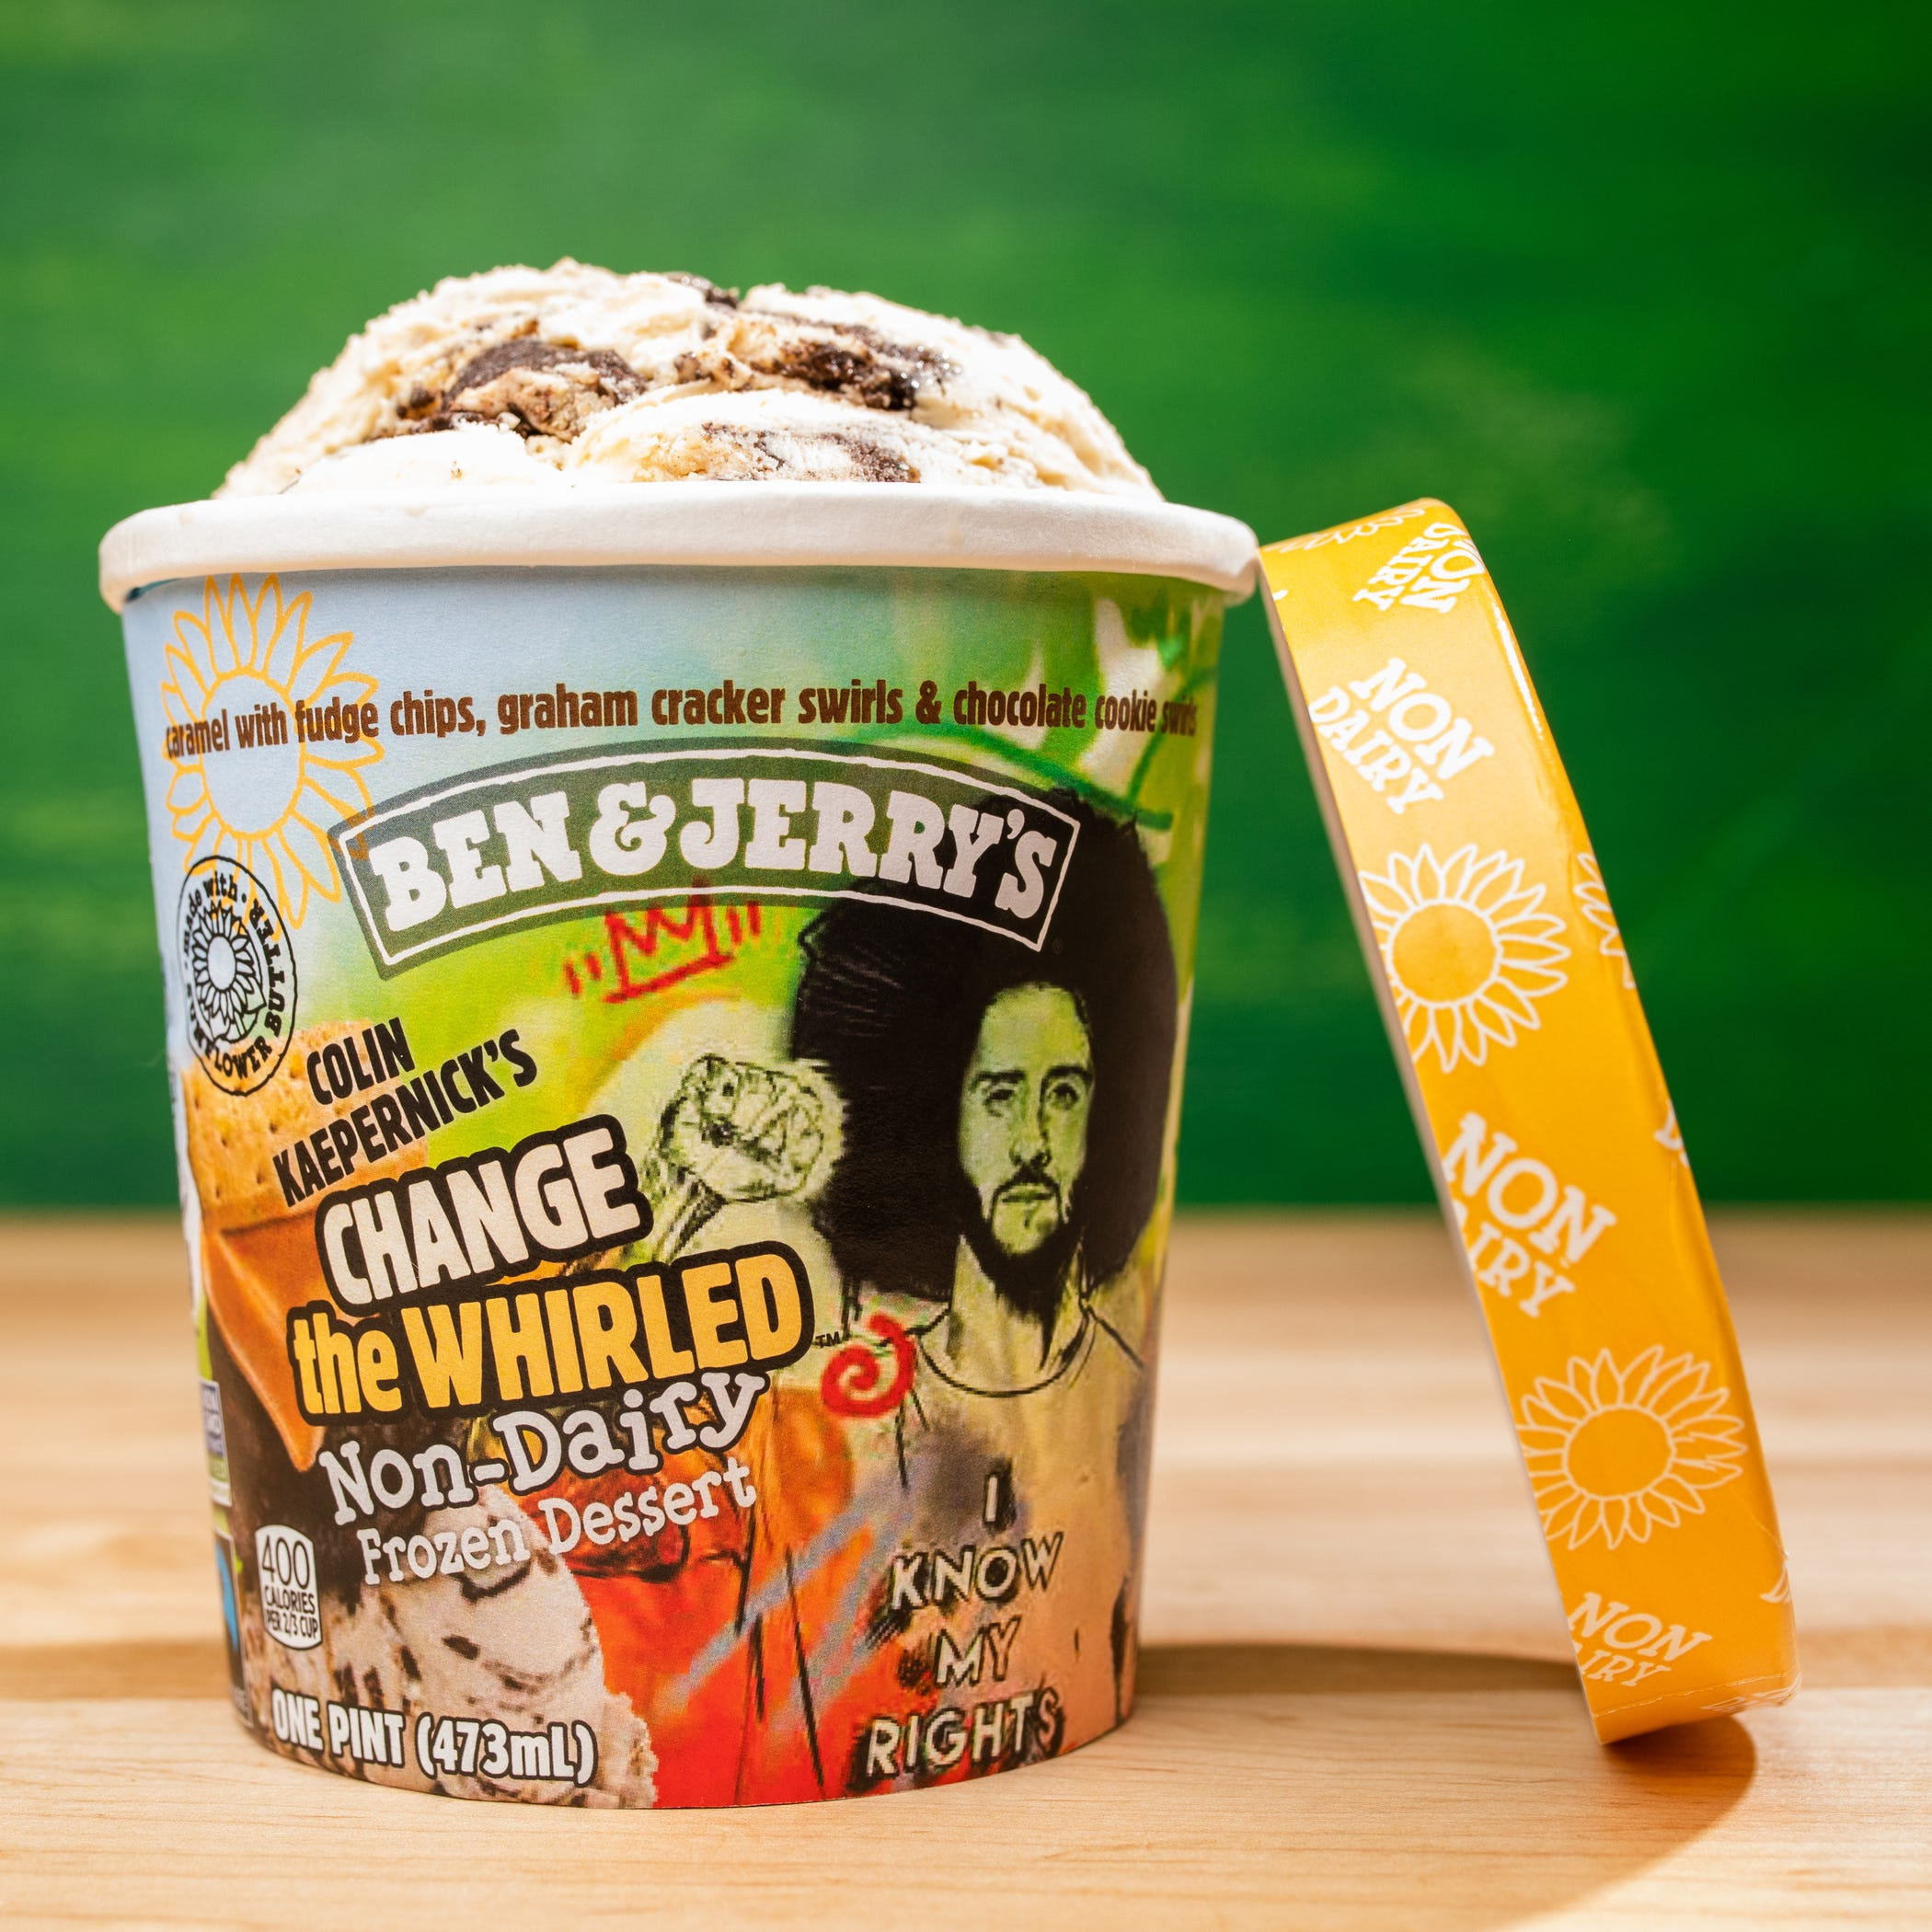 Opinion: Colin Kaepernick's activism moves to freezer section with Ben & Jerry's flavor